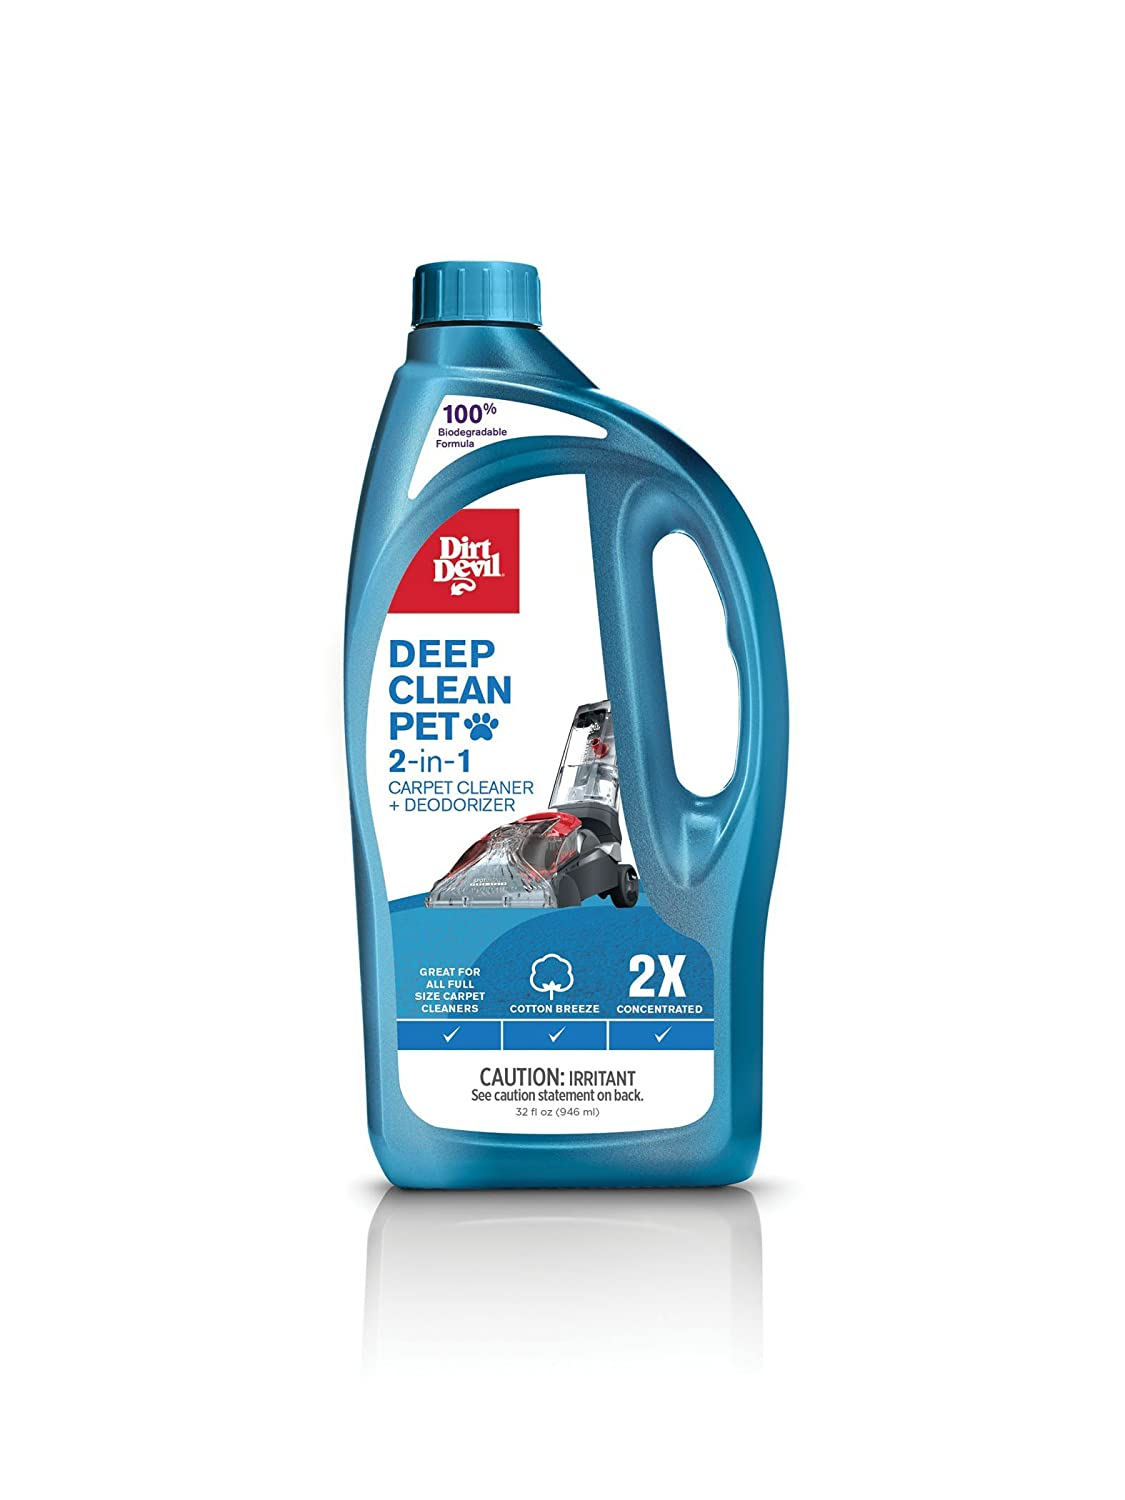 Dirt Devil AD30055 Deep Clean Pet 2X Solution Carpet Washer Hoover